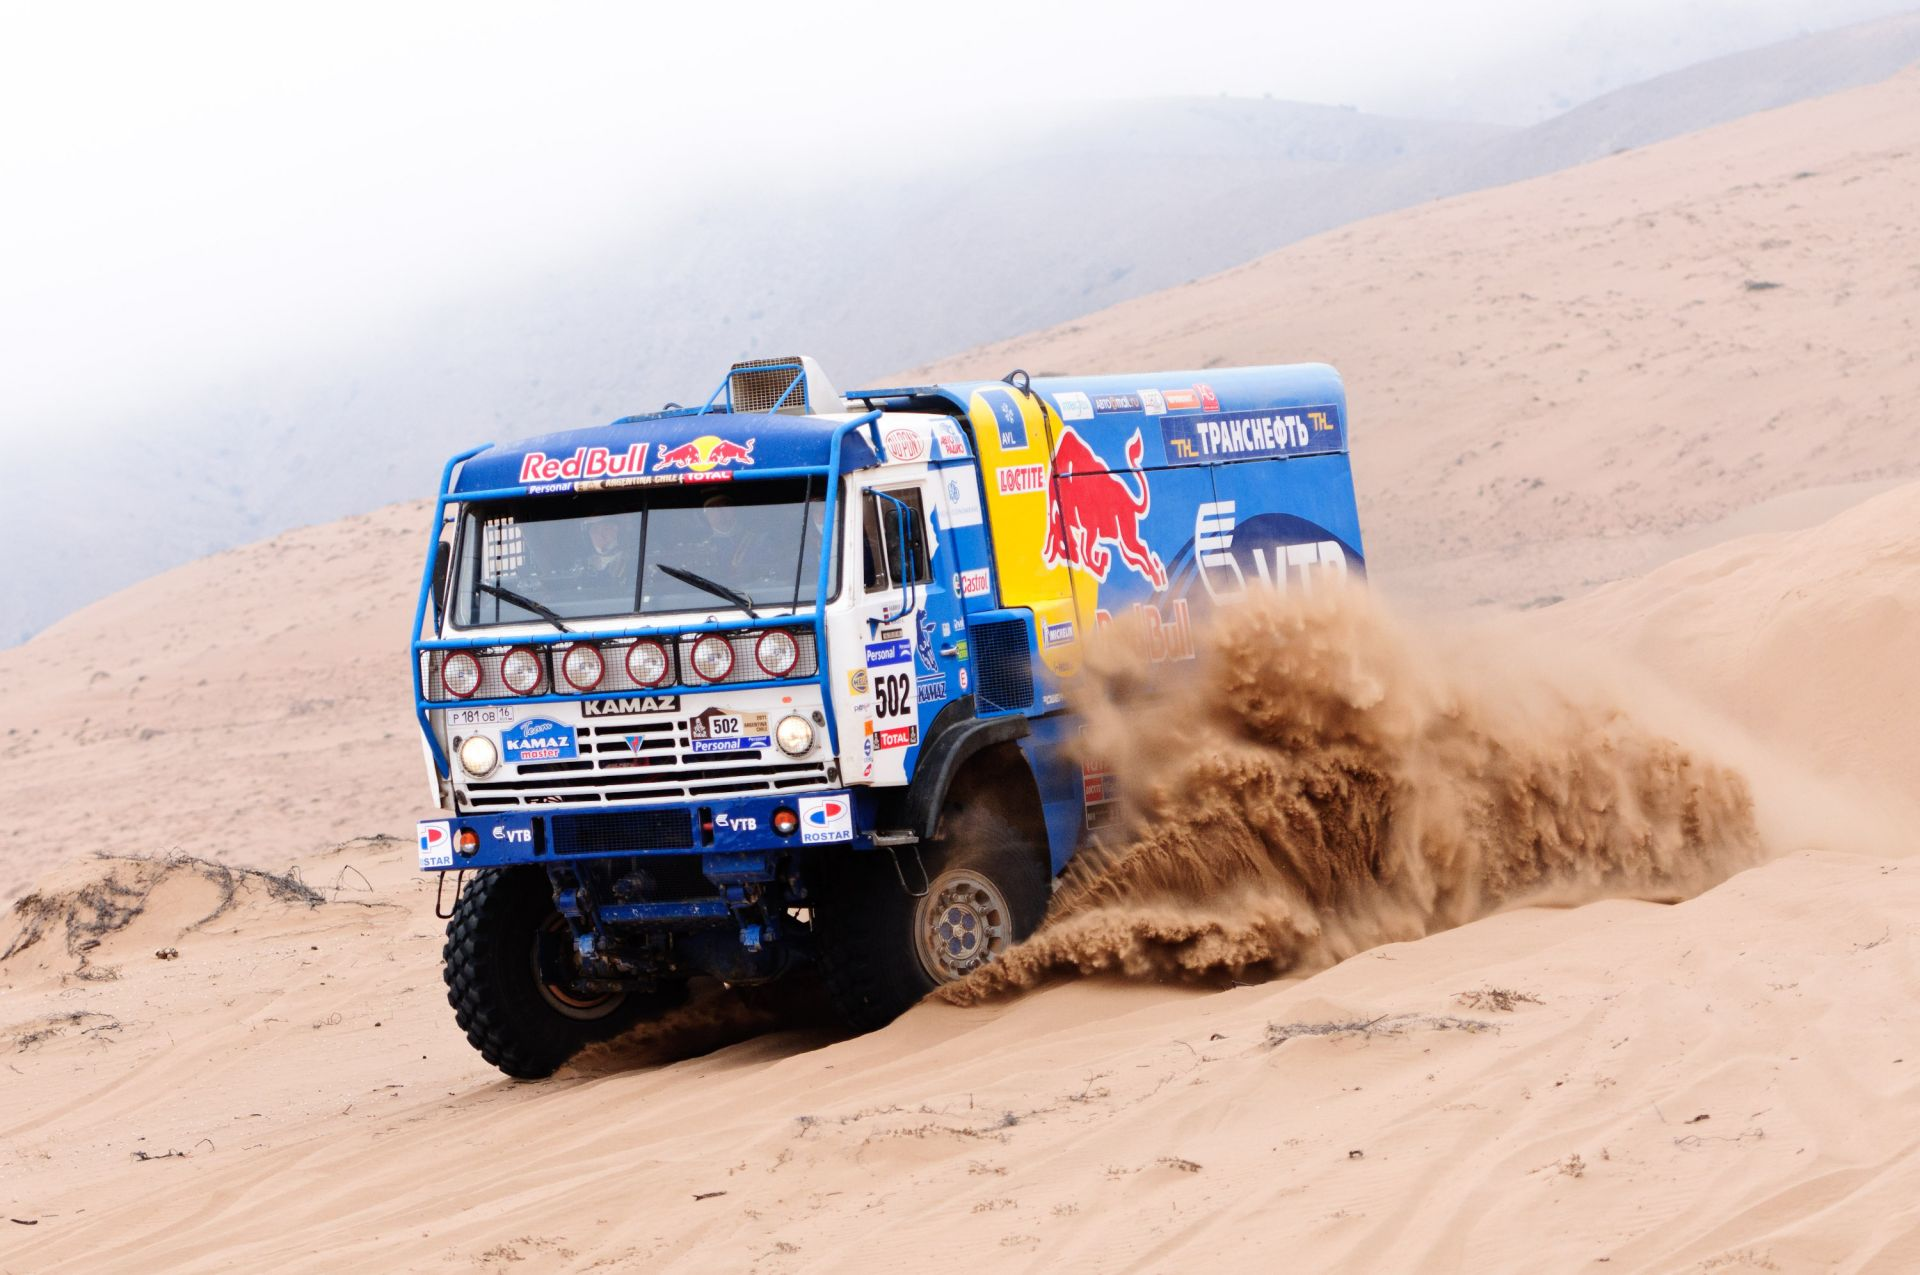 trucks sand vehicle dust truck rally race transportation system car soil travel track desert mud road adventure drive gravel wheel fast